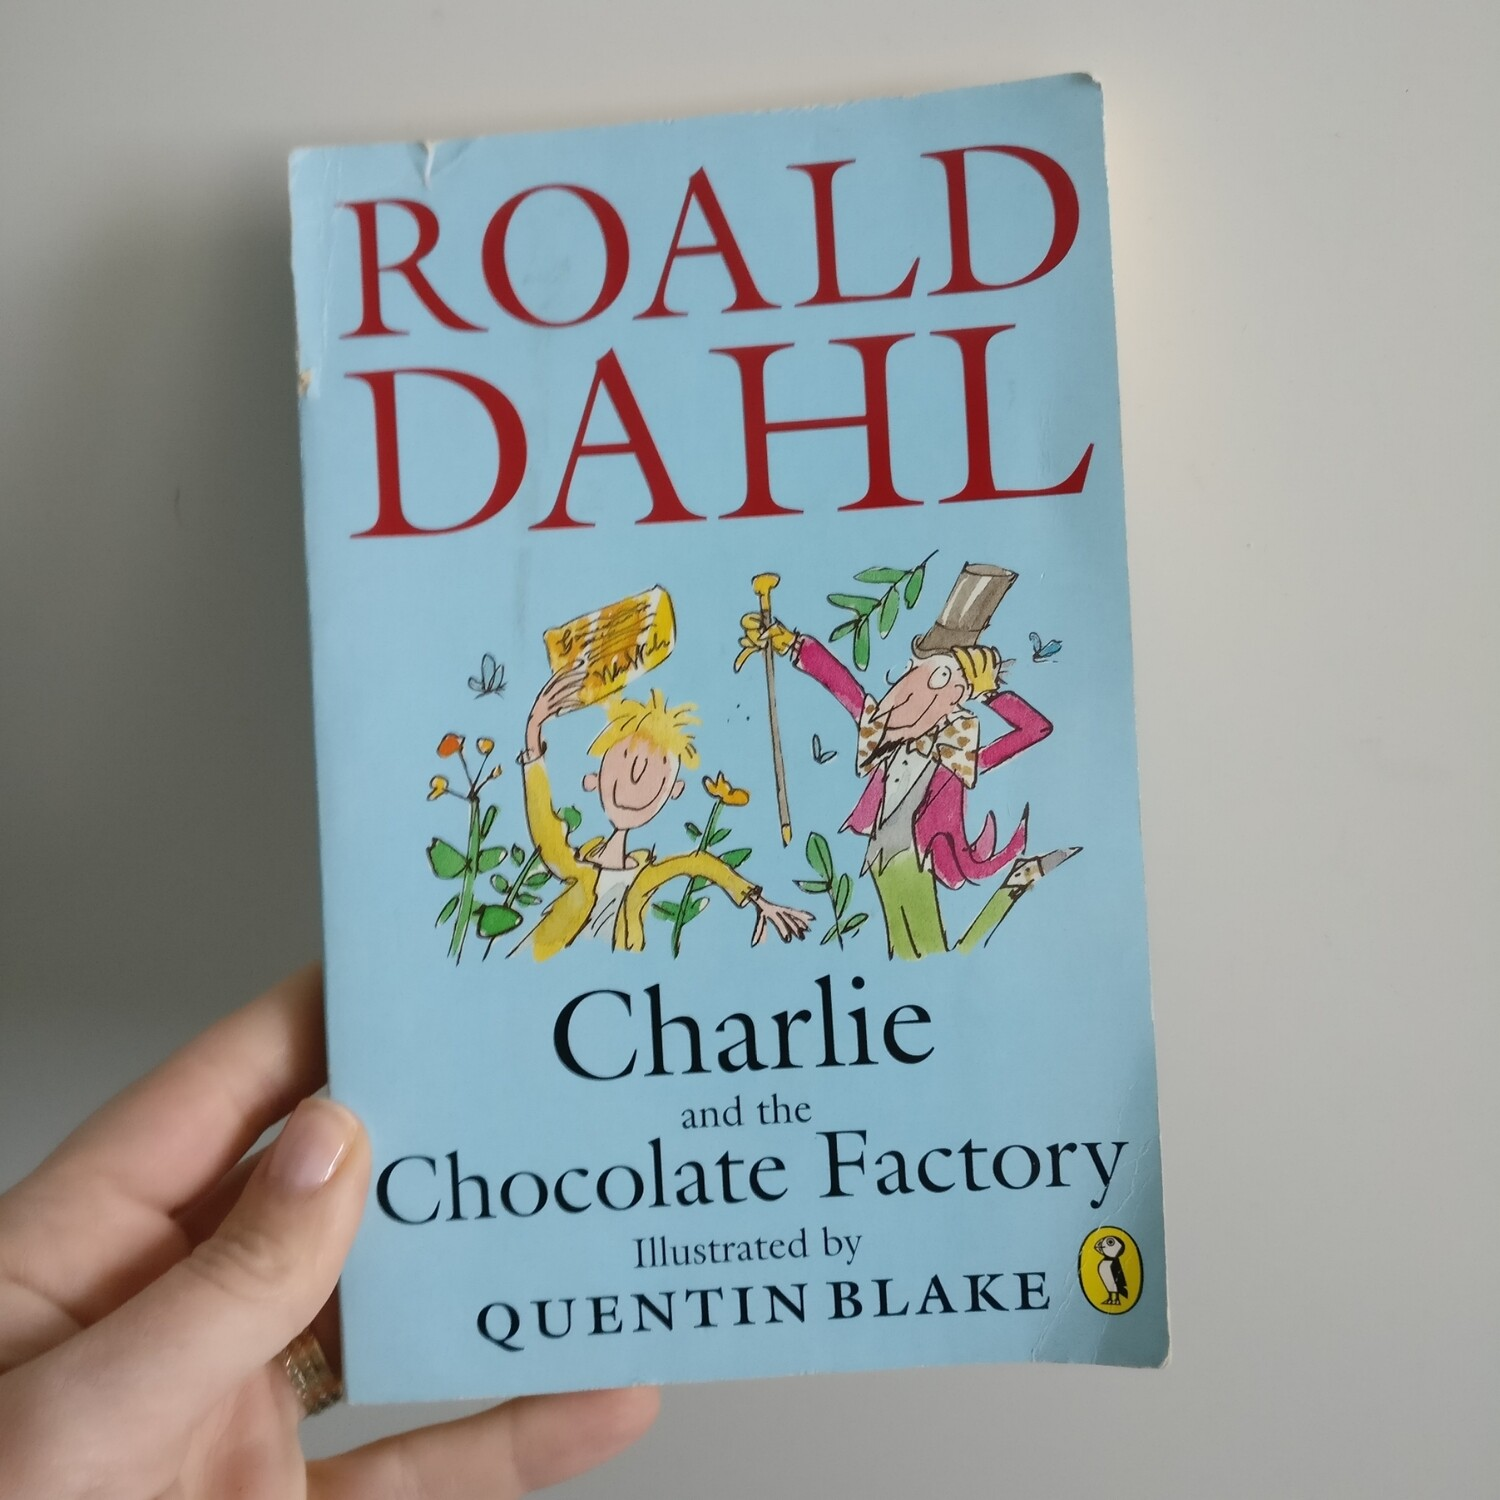 Charlie & The Chocolate Factory by Roald Dahl Notebook - made from a paperback book